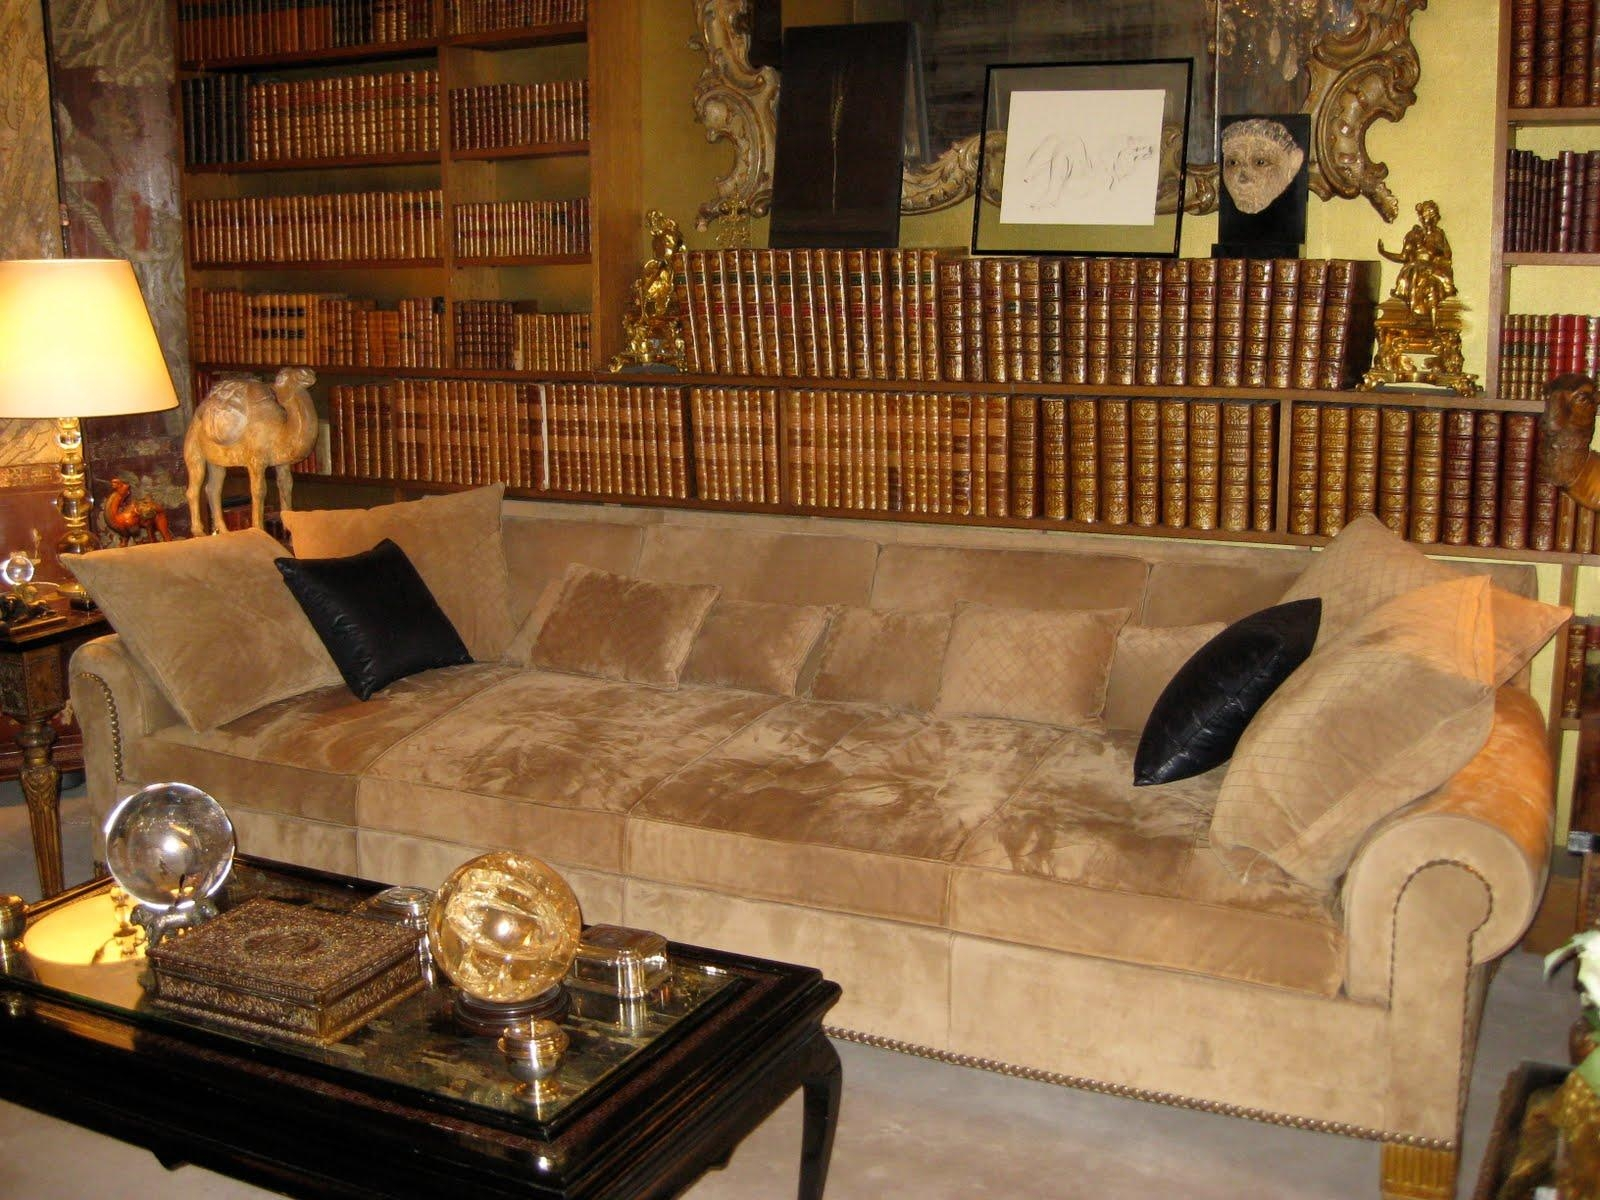 20 Best Collection of Coco Chanel Sofas  Sofa Ideas